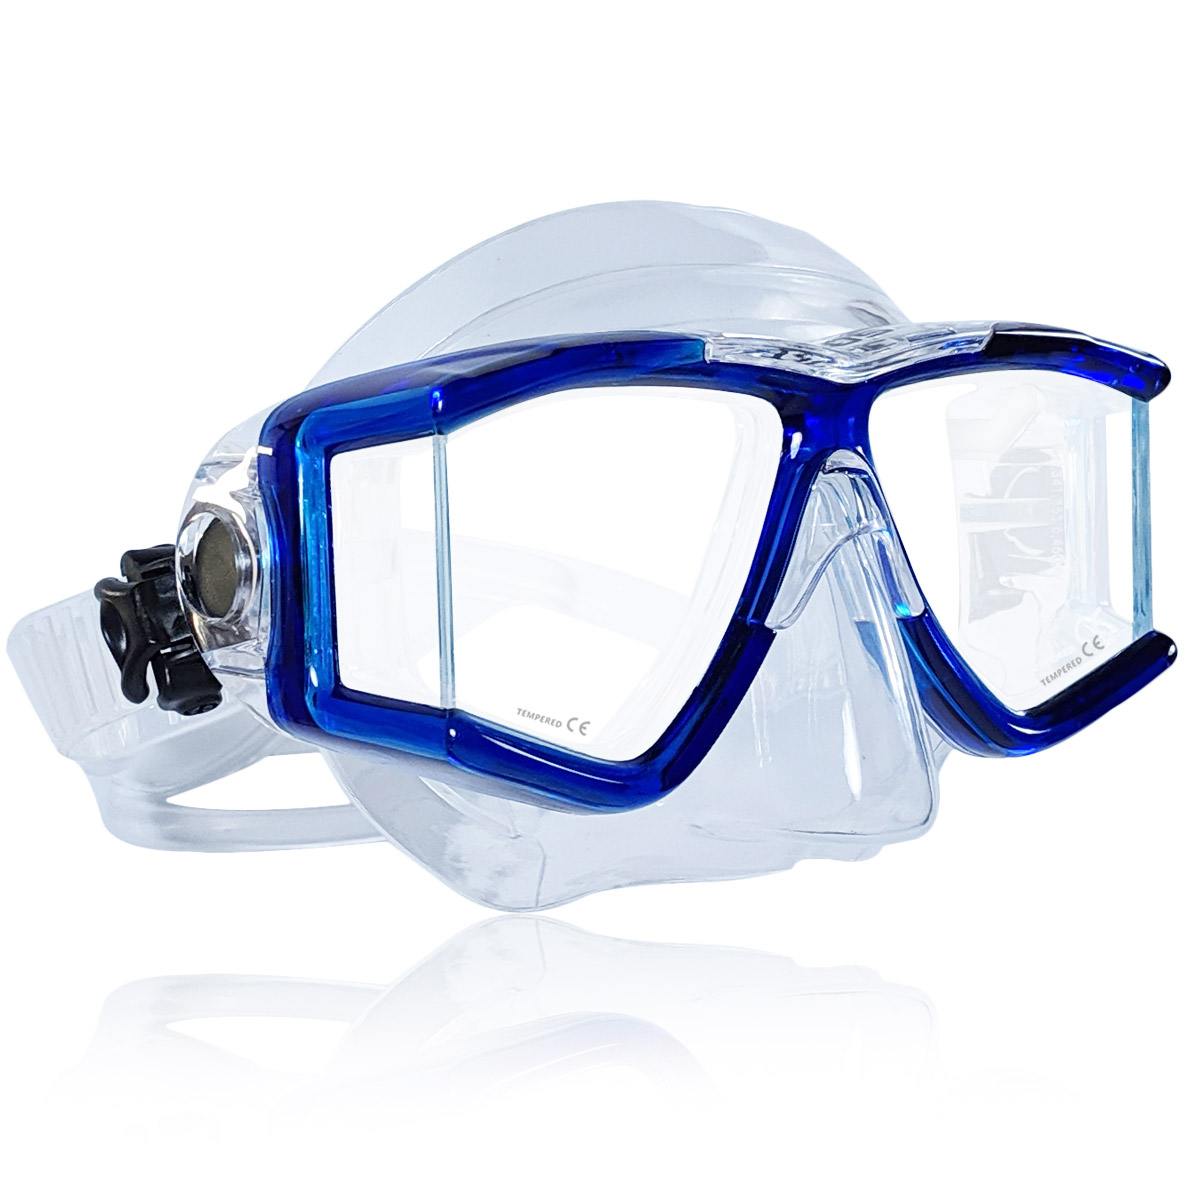 Tilos Panoramic Double Lens Jr. Snorkeling Mask